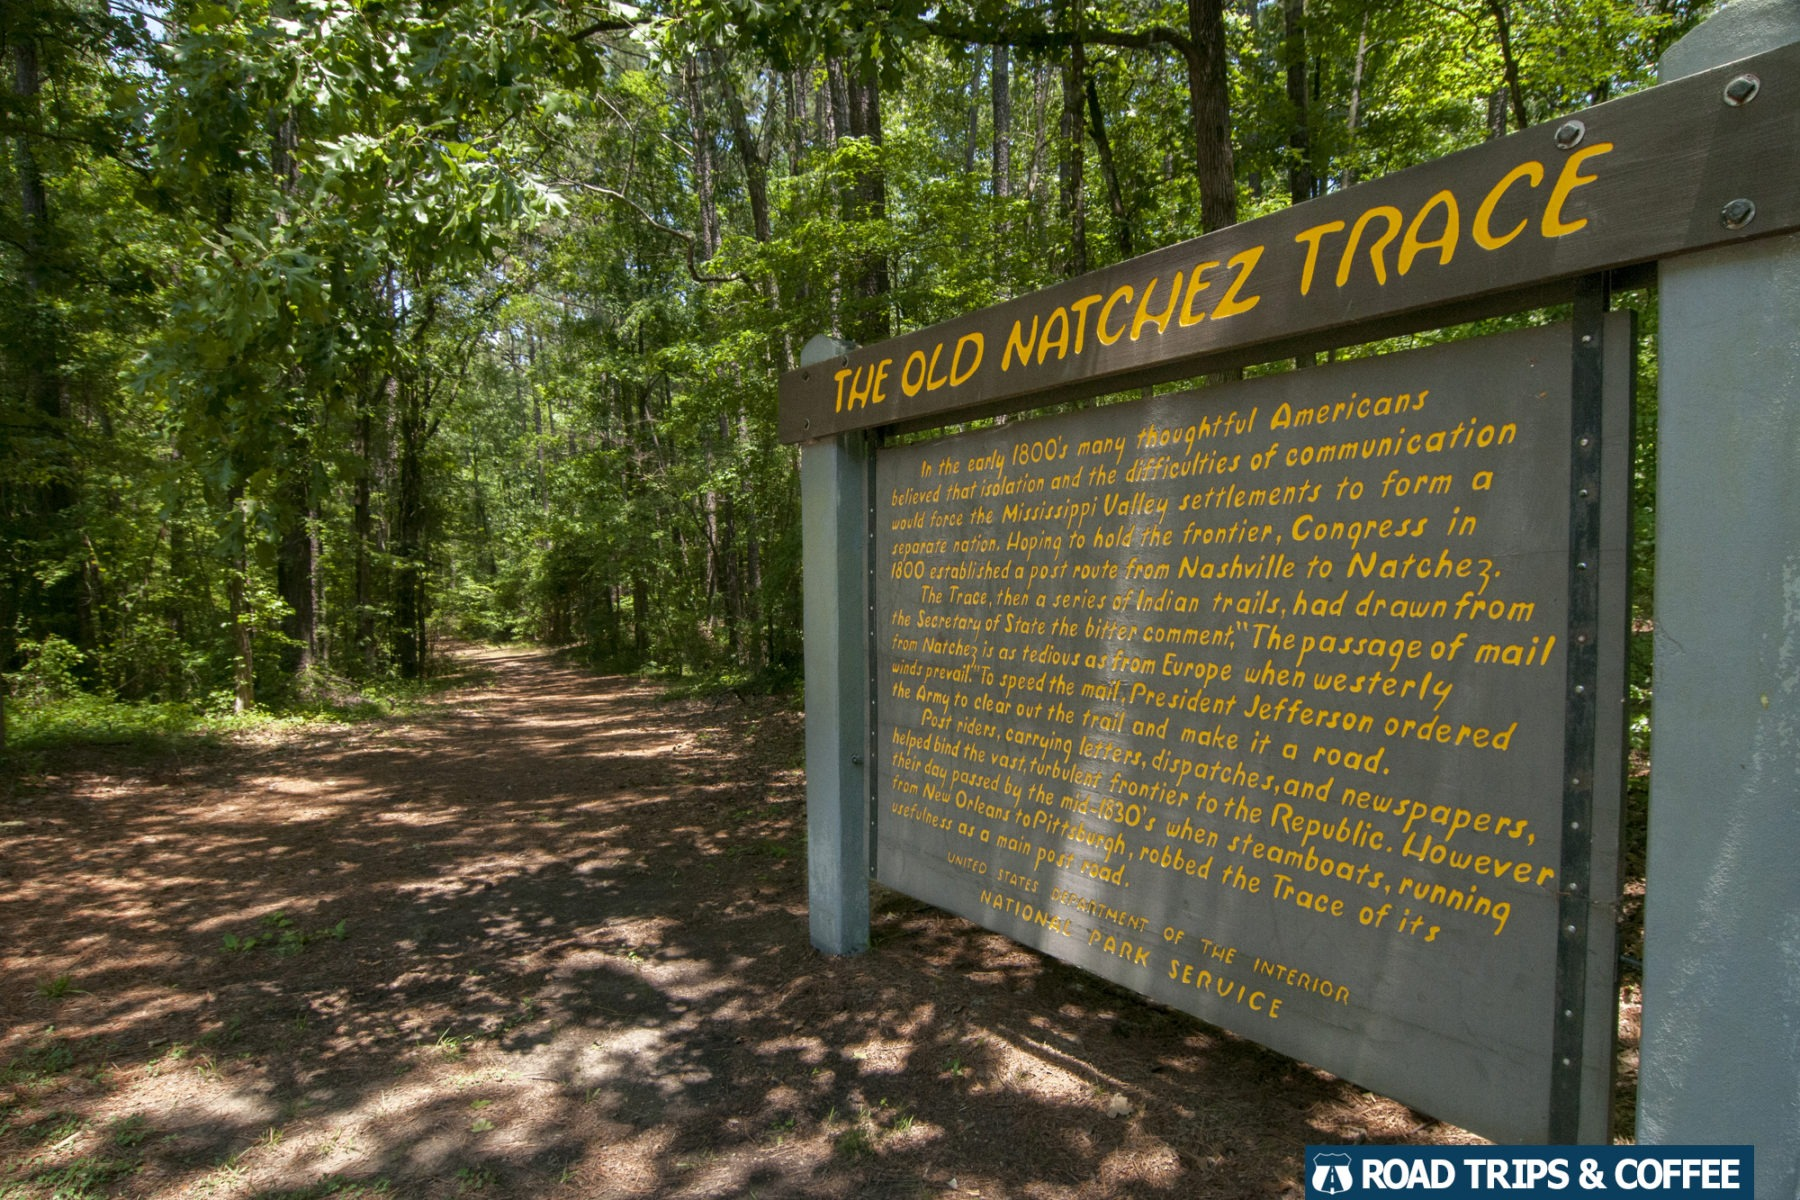 A large wooden sign explaining The Old Natchez Trace on the Natchez Trace Parkway in Mississippi